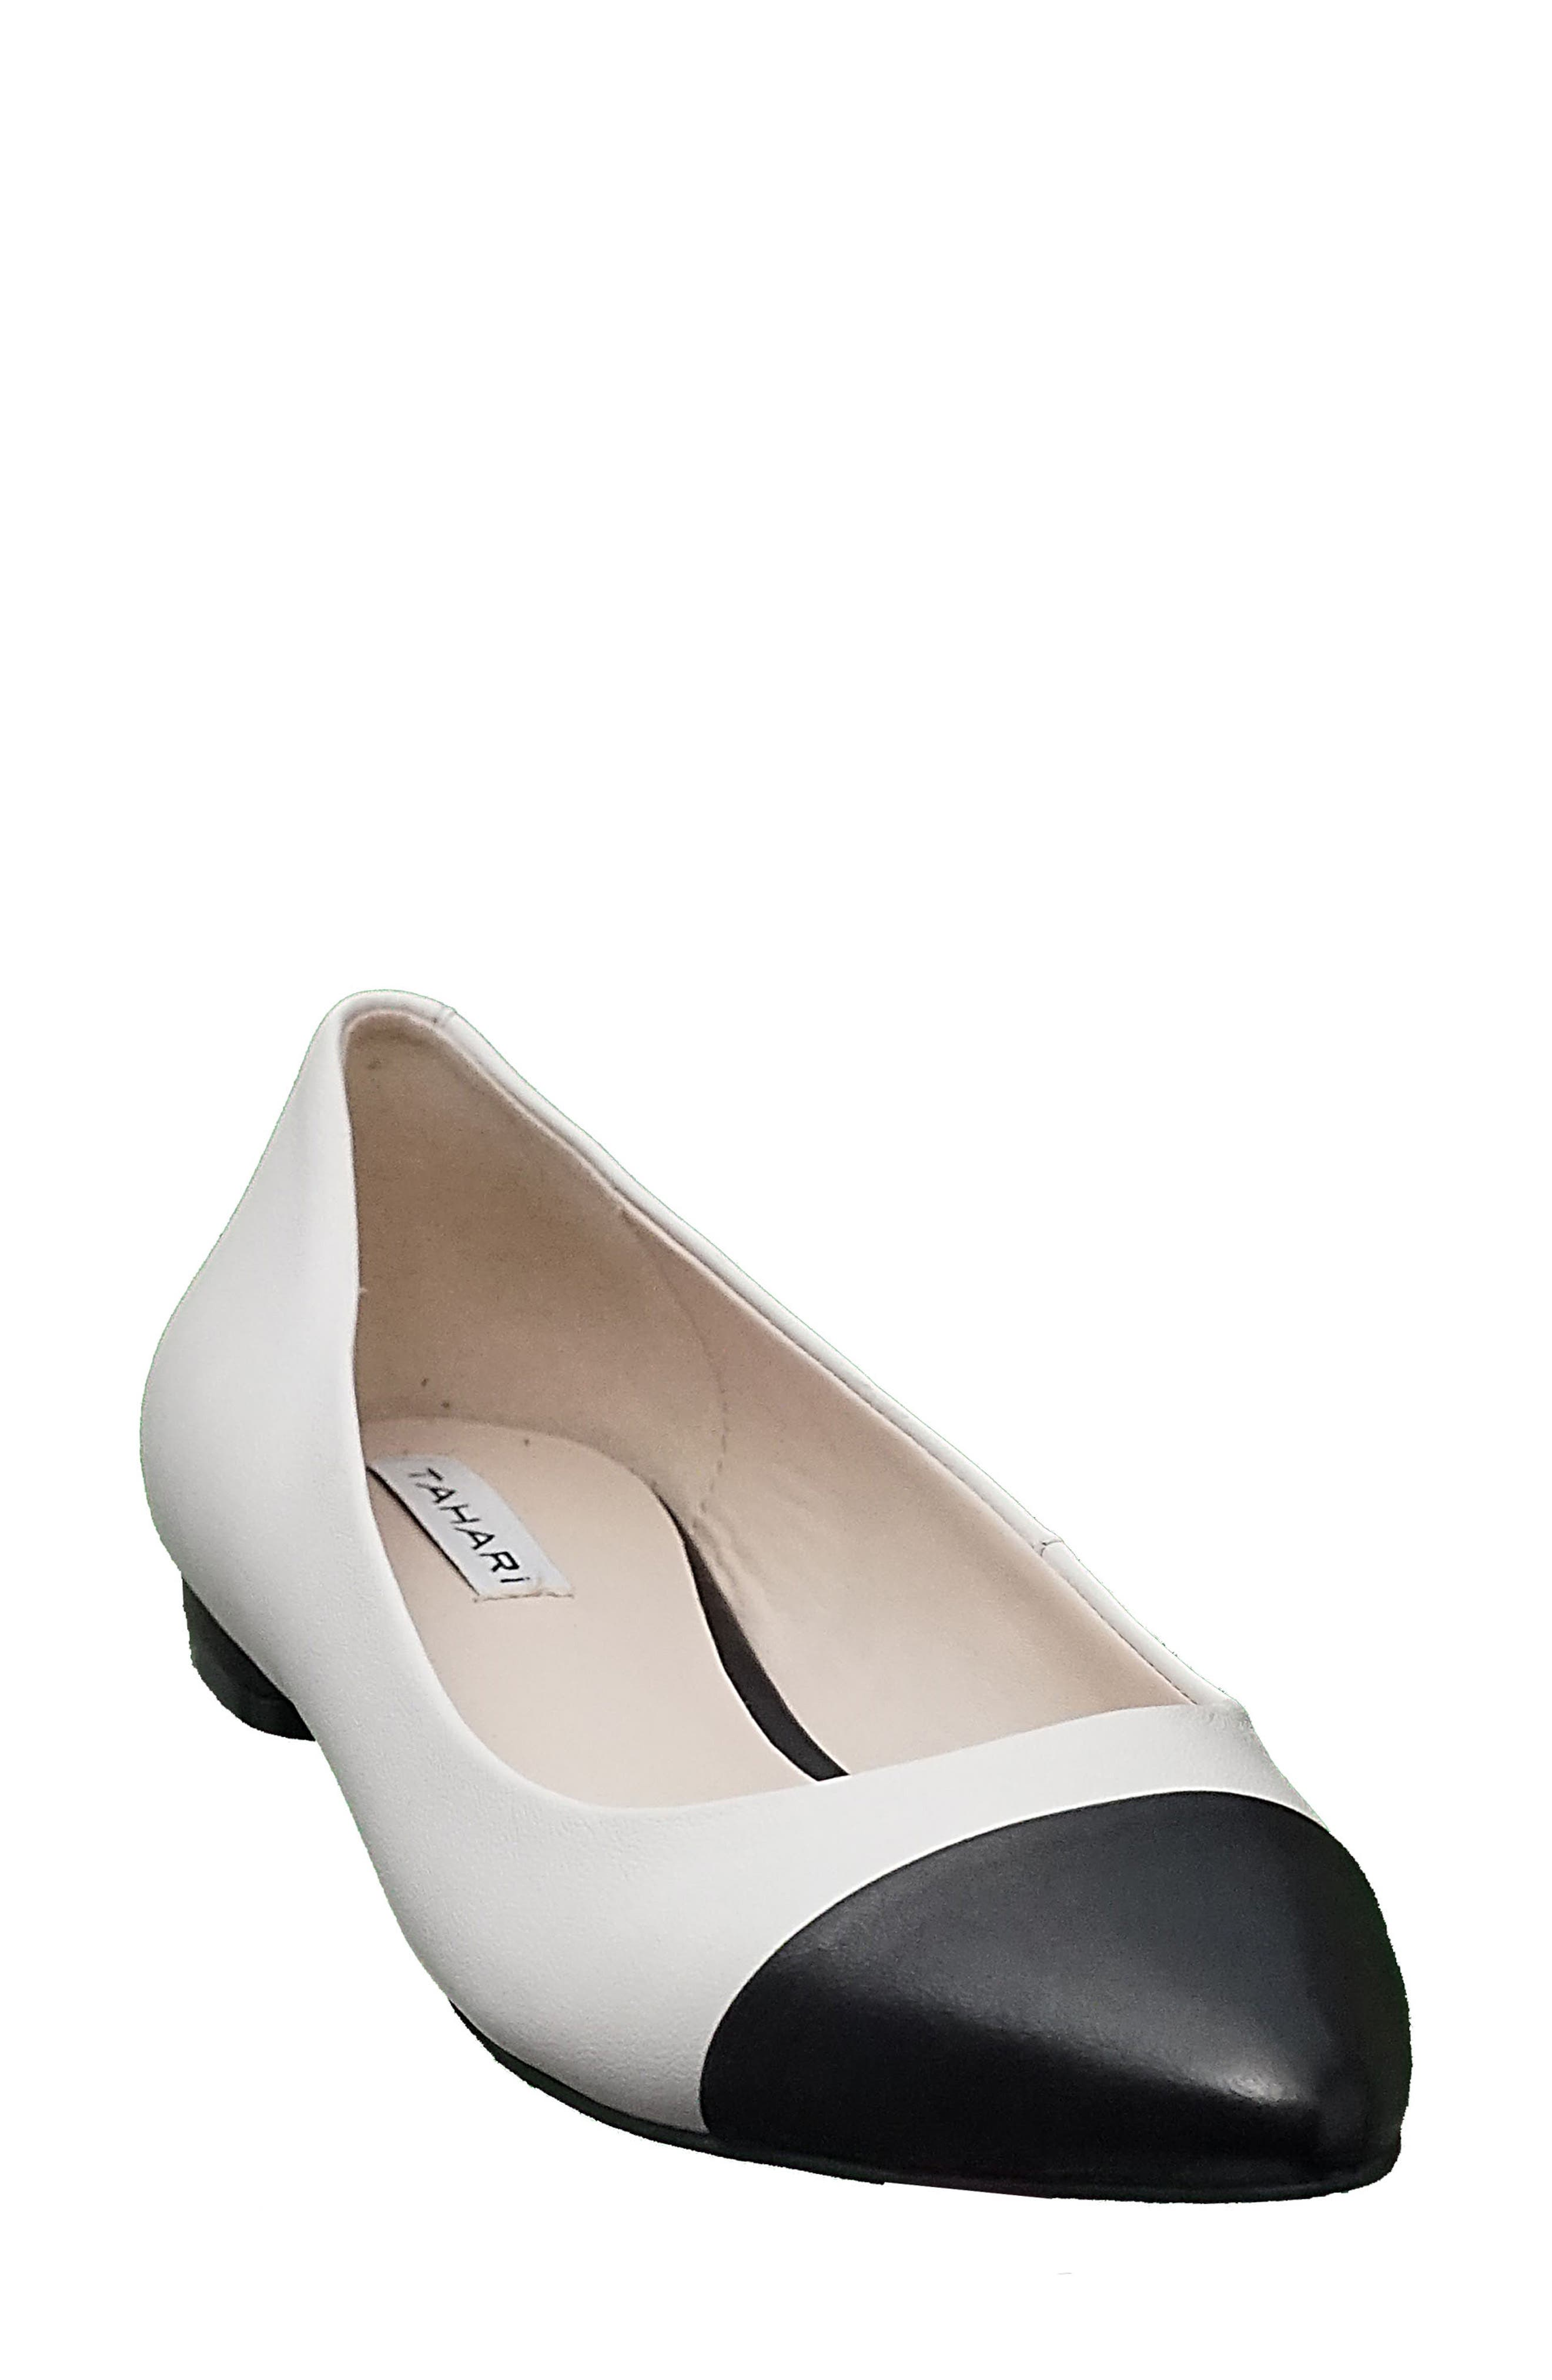 cc6f4a52229 Women s T Tahari Shoes